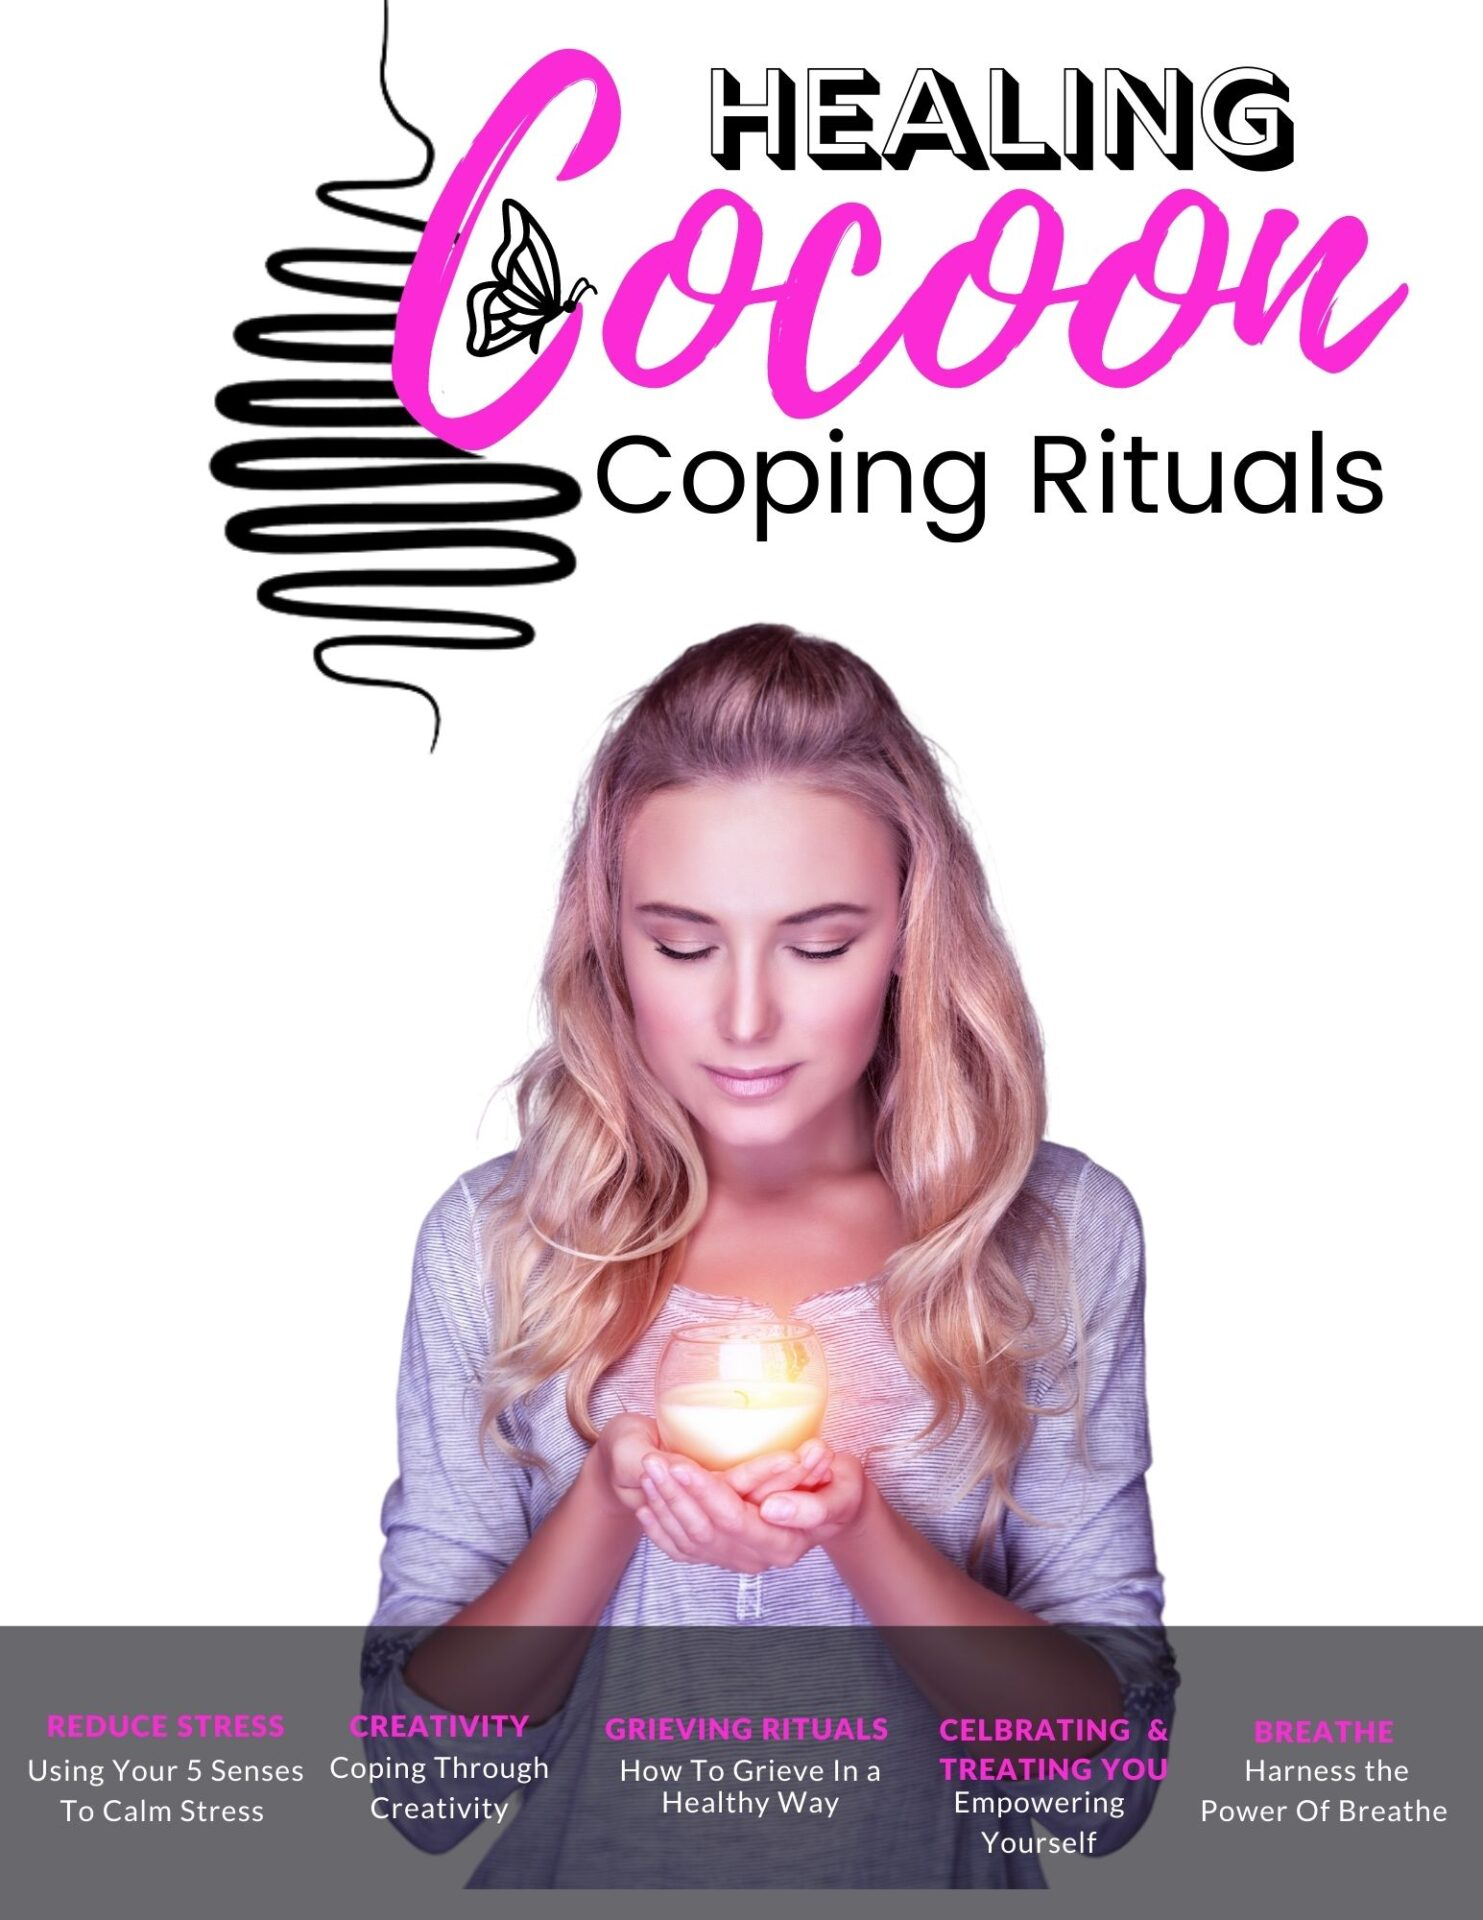 healing cocoon a place to heal from the trauma of abuse, rape and loss to feel happy again